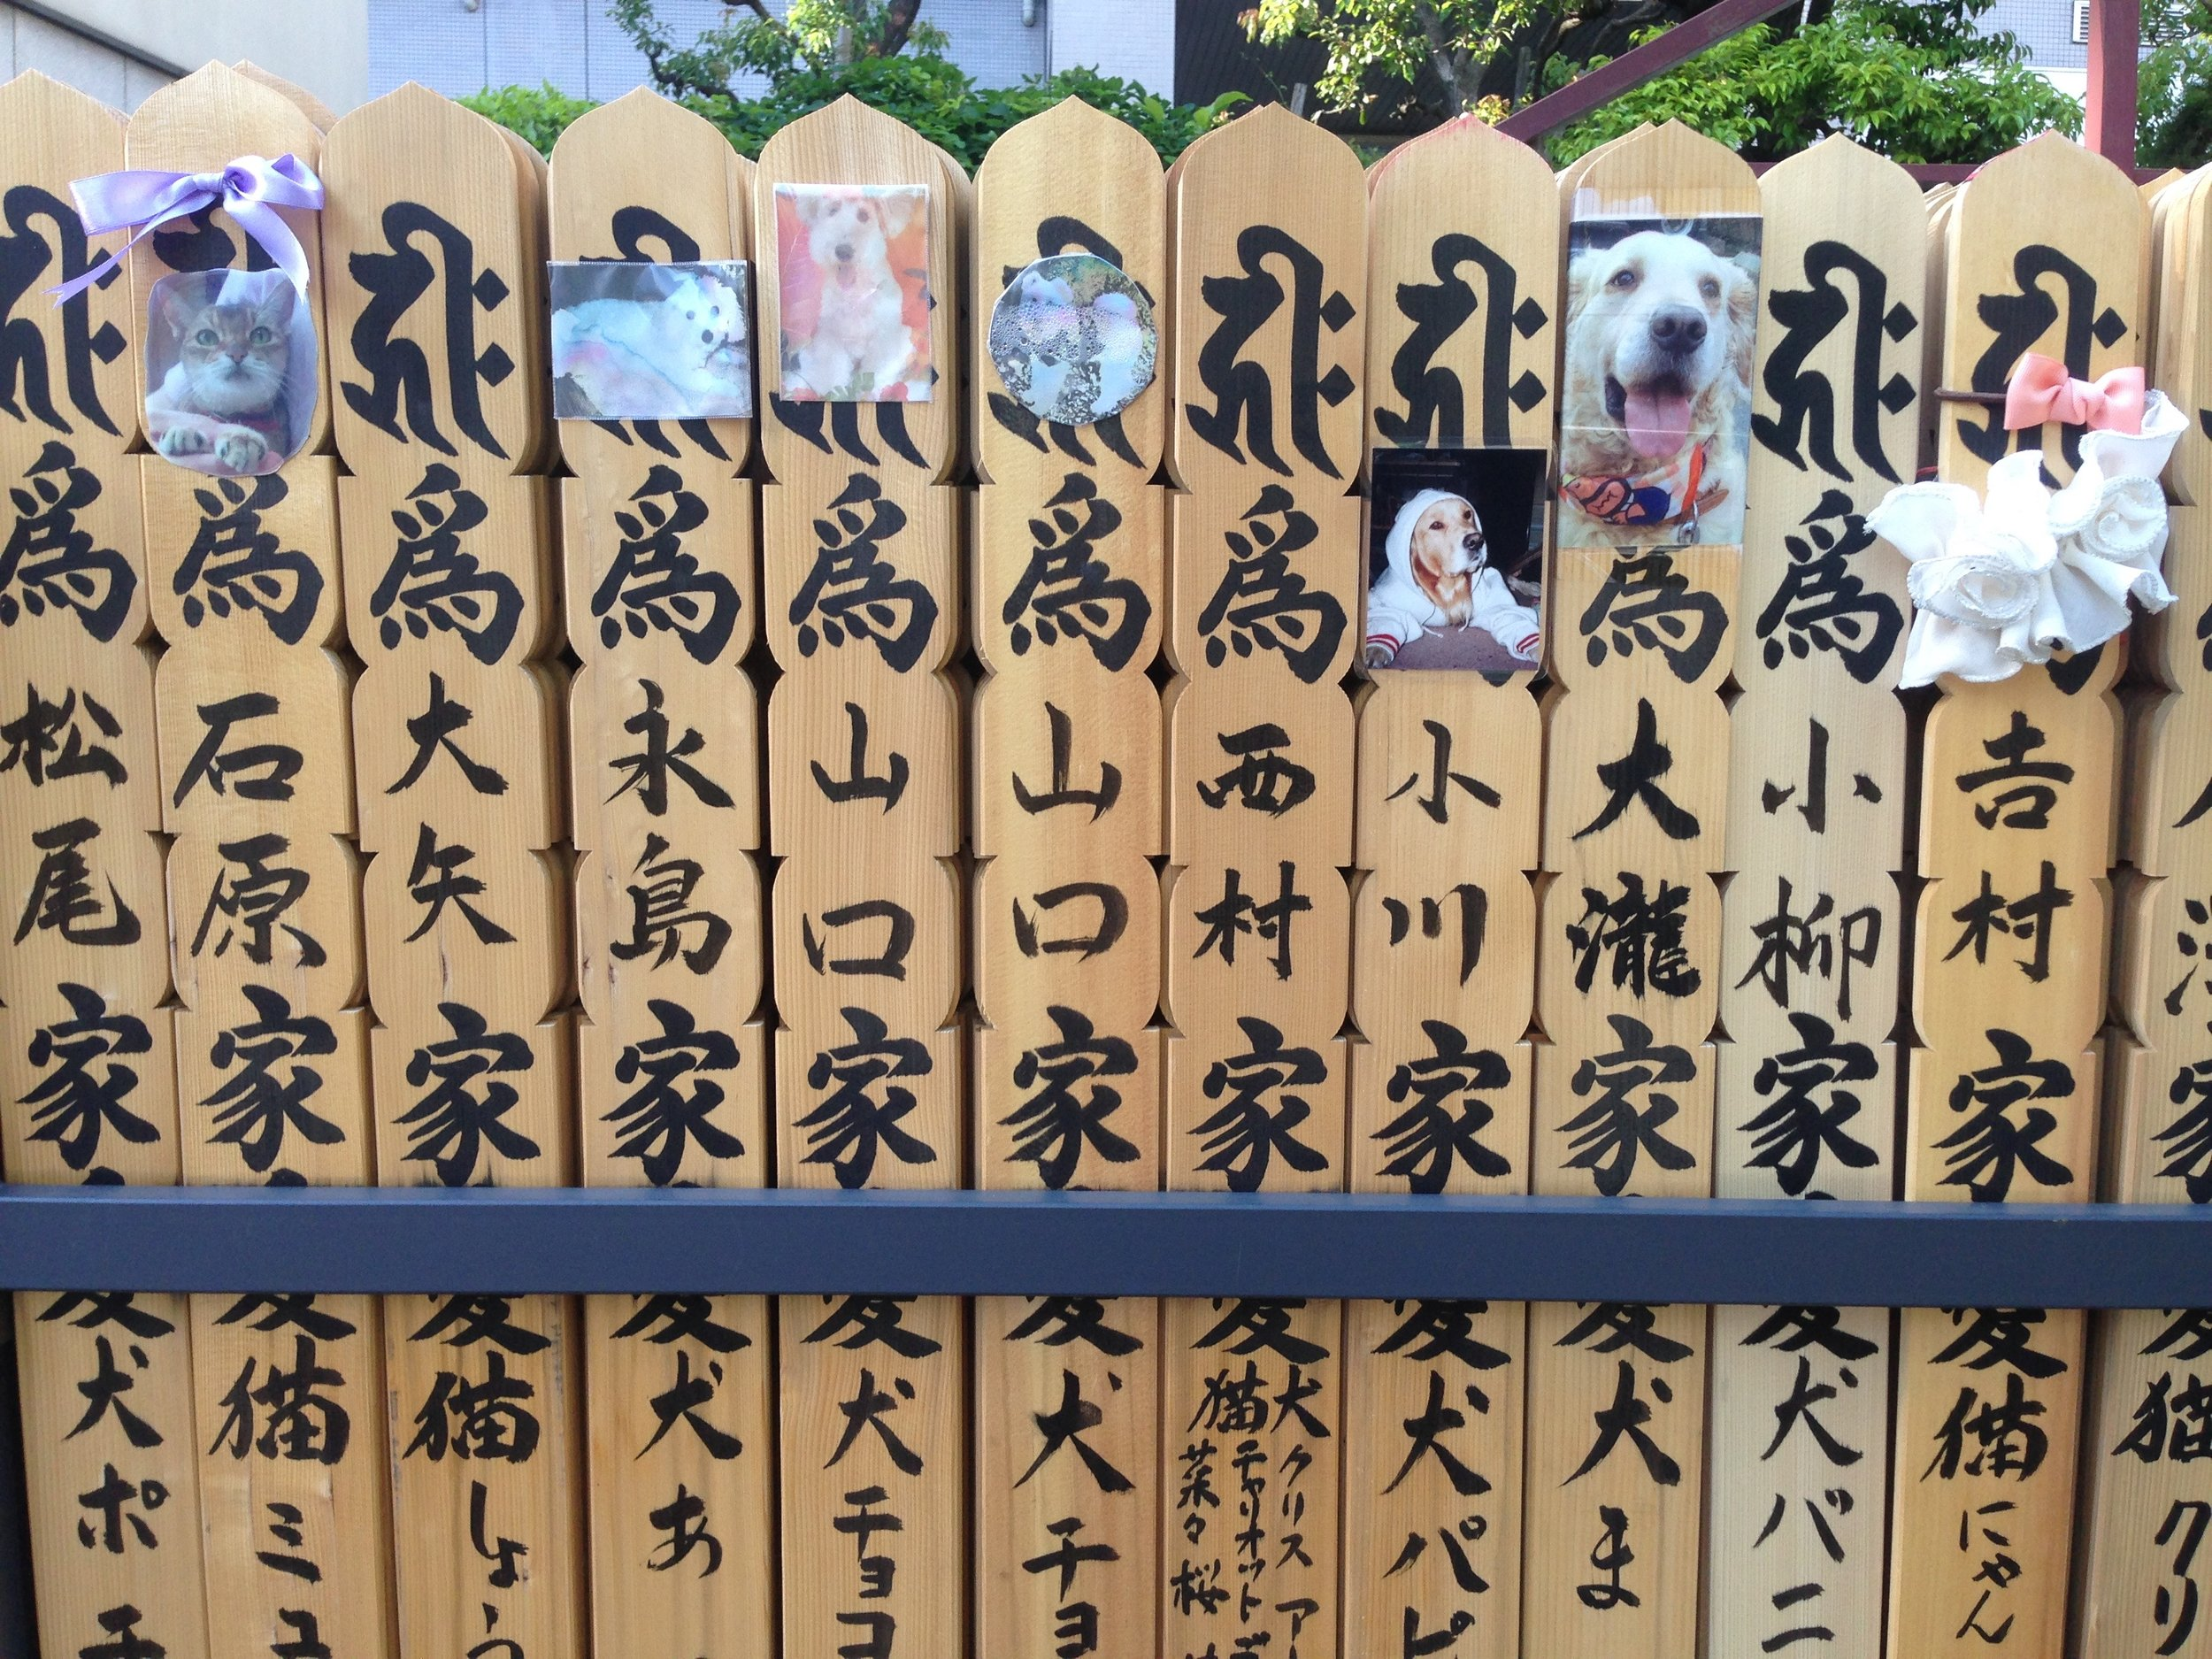 Many photos of dogs and a few cats on rows and rows of these wooden panels.